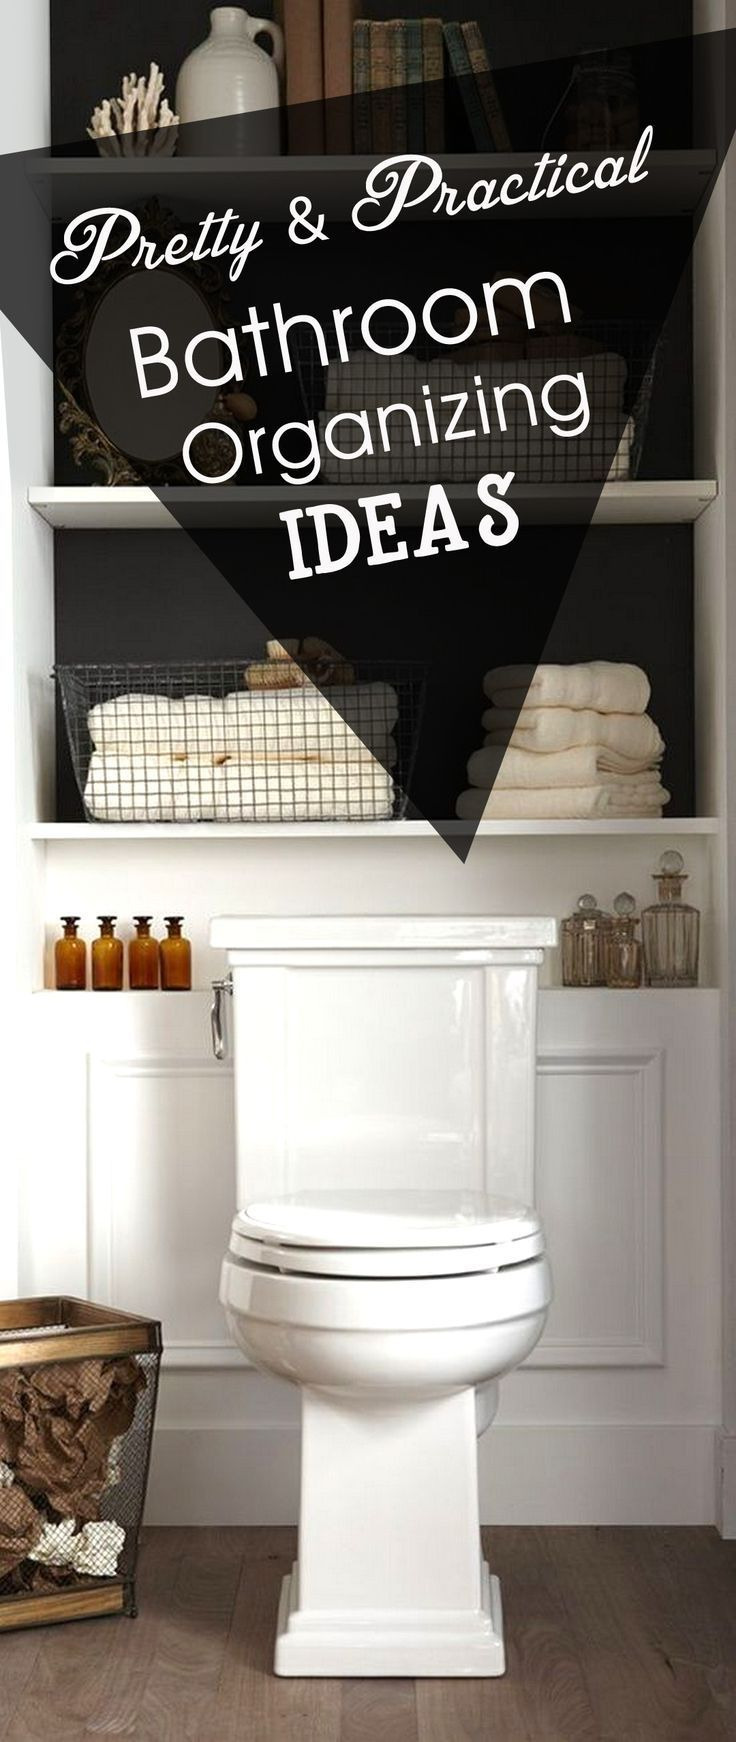 Ideas to Decorate Your Bathroom Beautiful Super Creative Ways to Decorate Your Bathroom